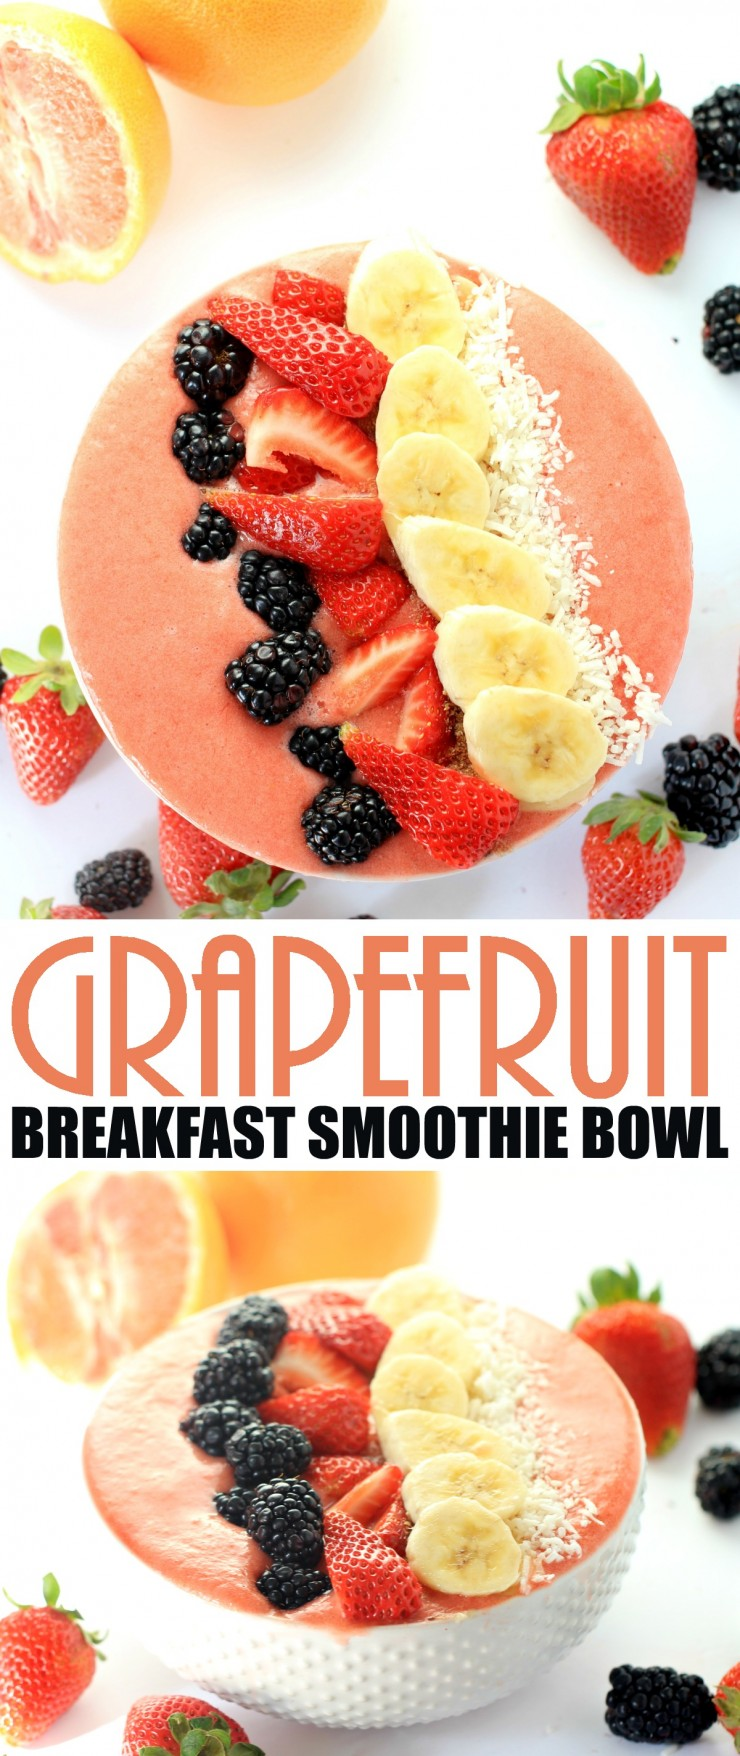 This Grapefruit Breakfast Smoothie Bowl recipe will help you get going with an energizing and filling breakfast packed with fruit.